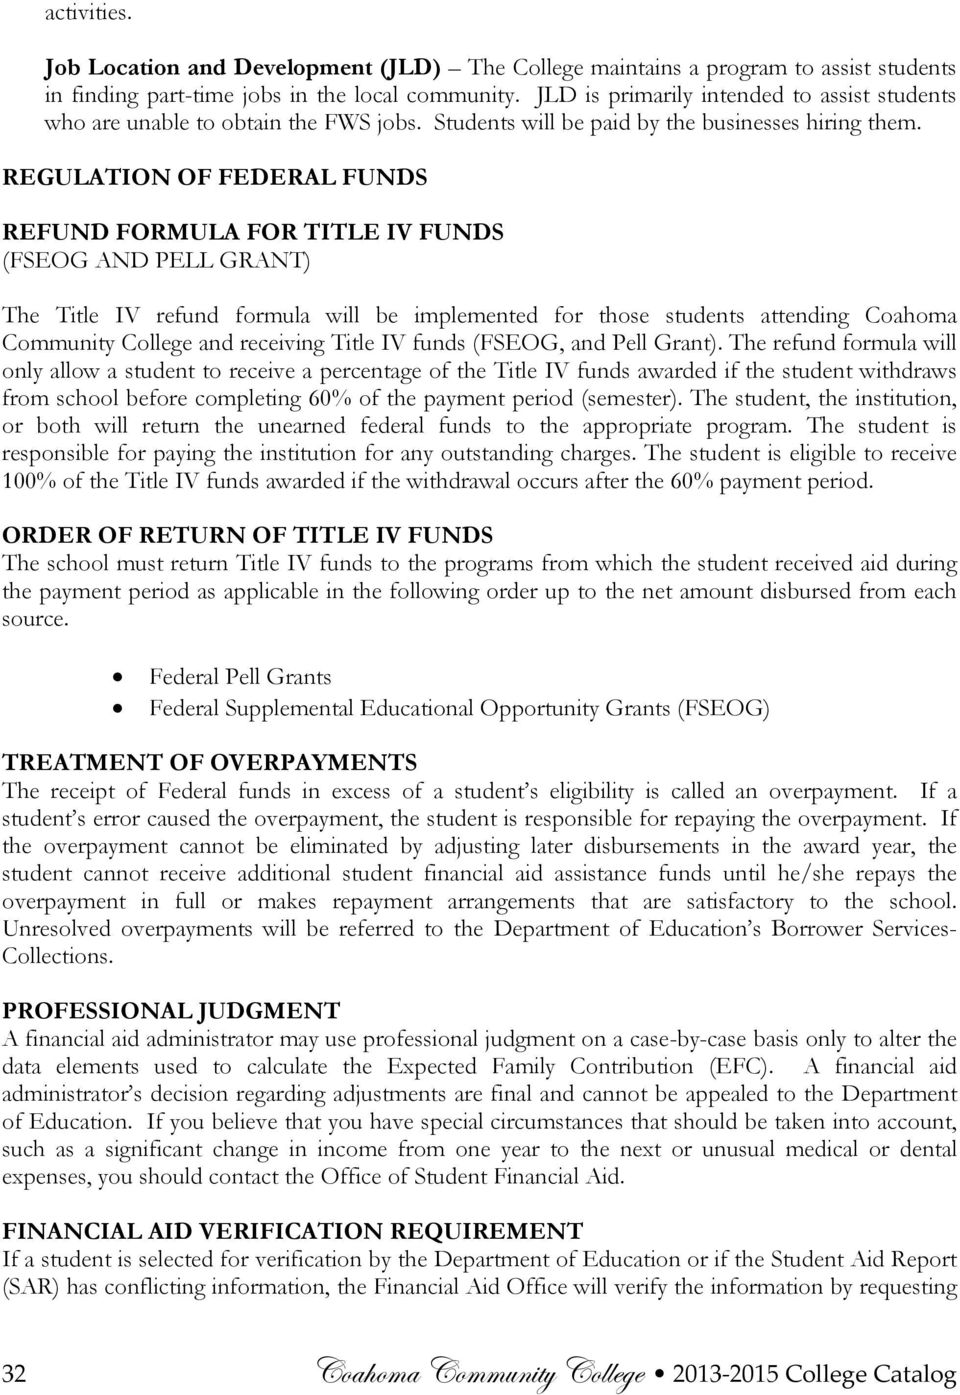 REGULATION OF FEDERAL FUNDS REFUND FORMULA FOR TITLE IV FUNDS (FSEOG AND PELL GRANT) The Title IV refund formula will be implemented for those students attending Coahoma Community College and